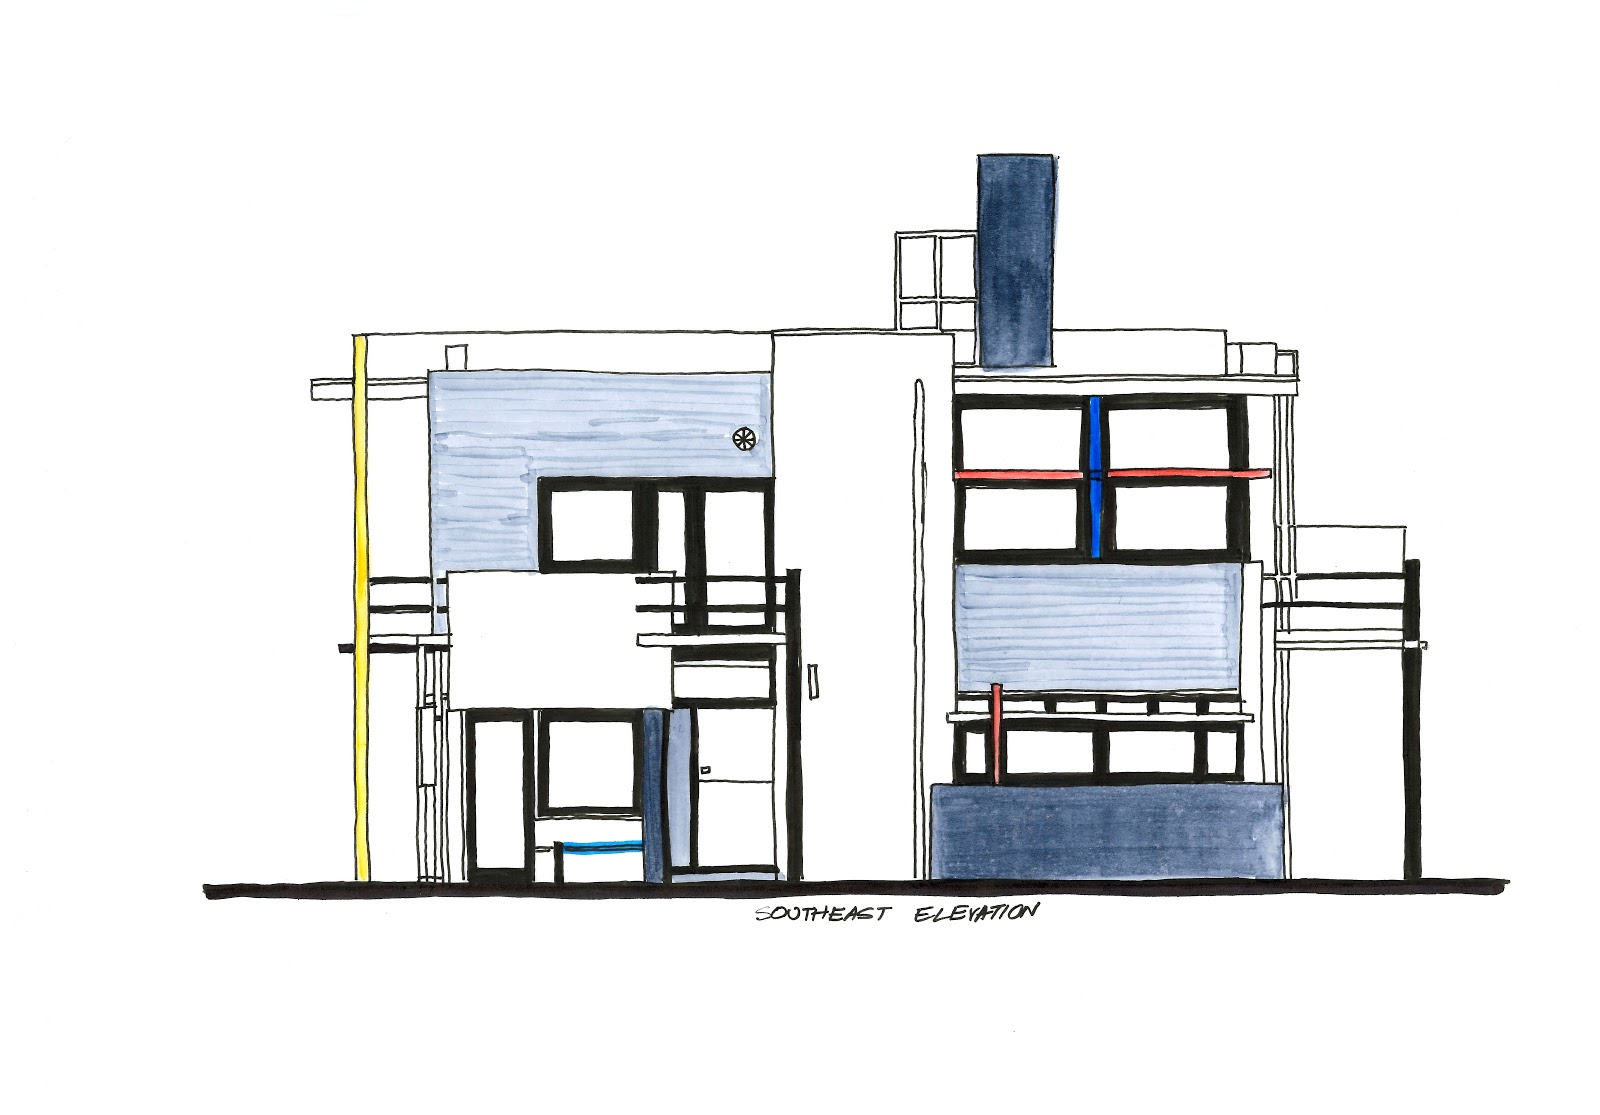 Best Color Interior The Rietveld Schroder House Diagrams An In Depth